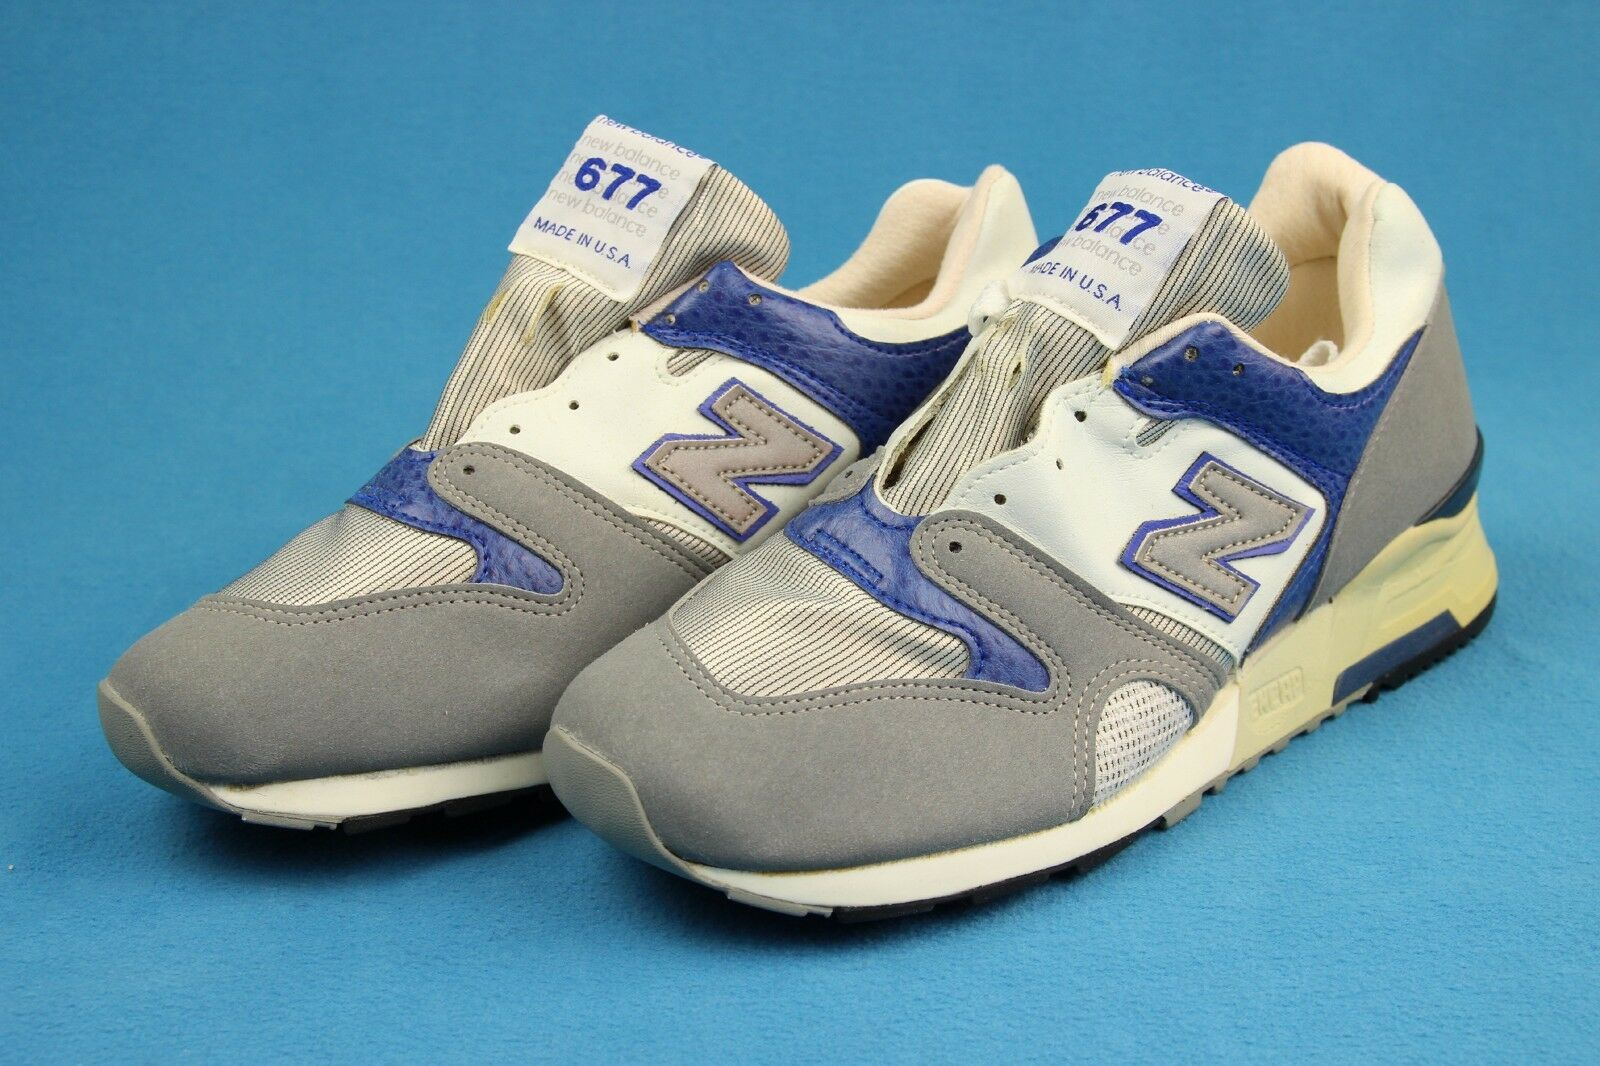 Vintage NEW BALANCE 667 Deadstock shoes  NOS  USA Made Running Sneakers Sz 8.5